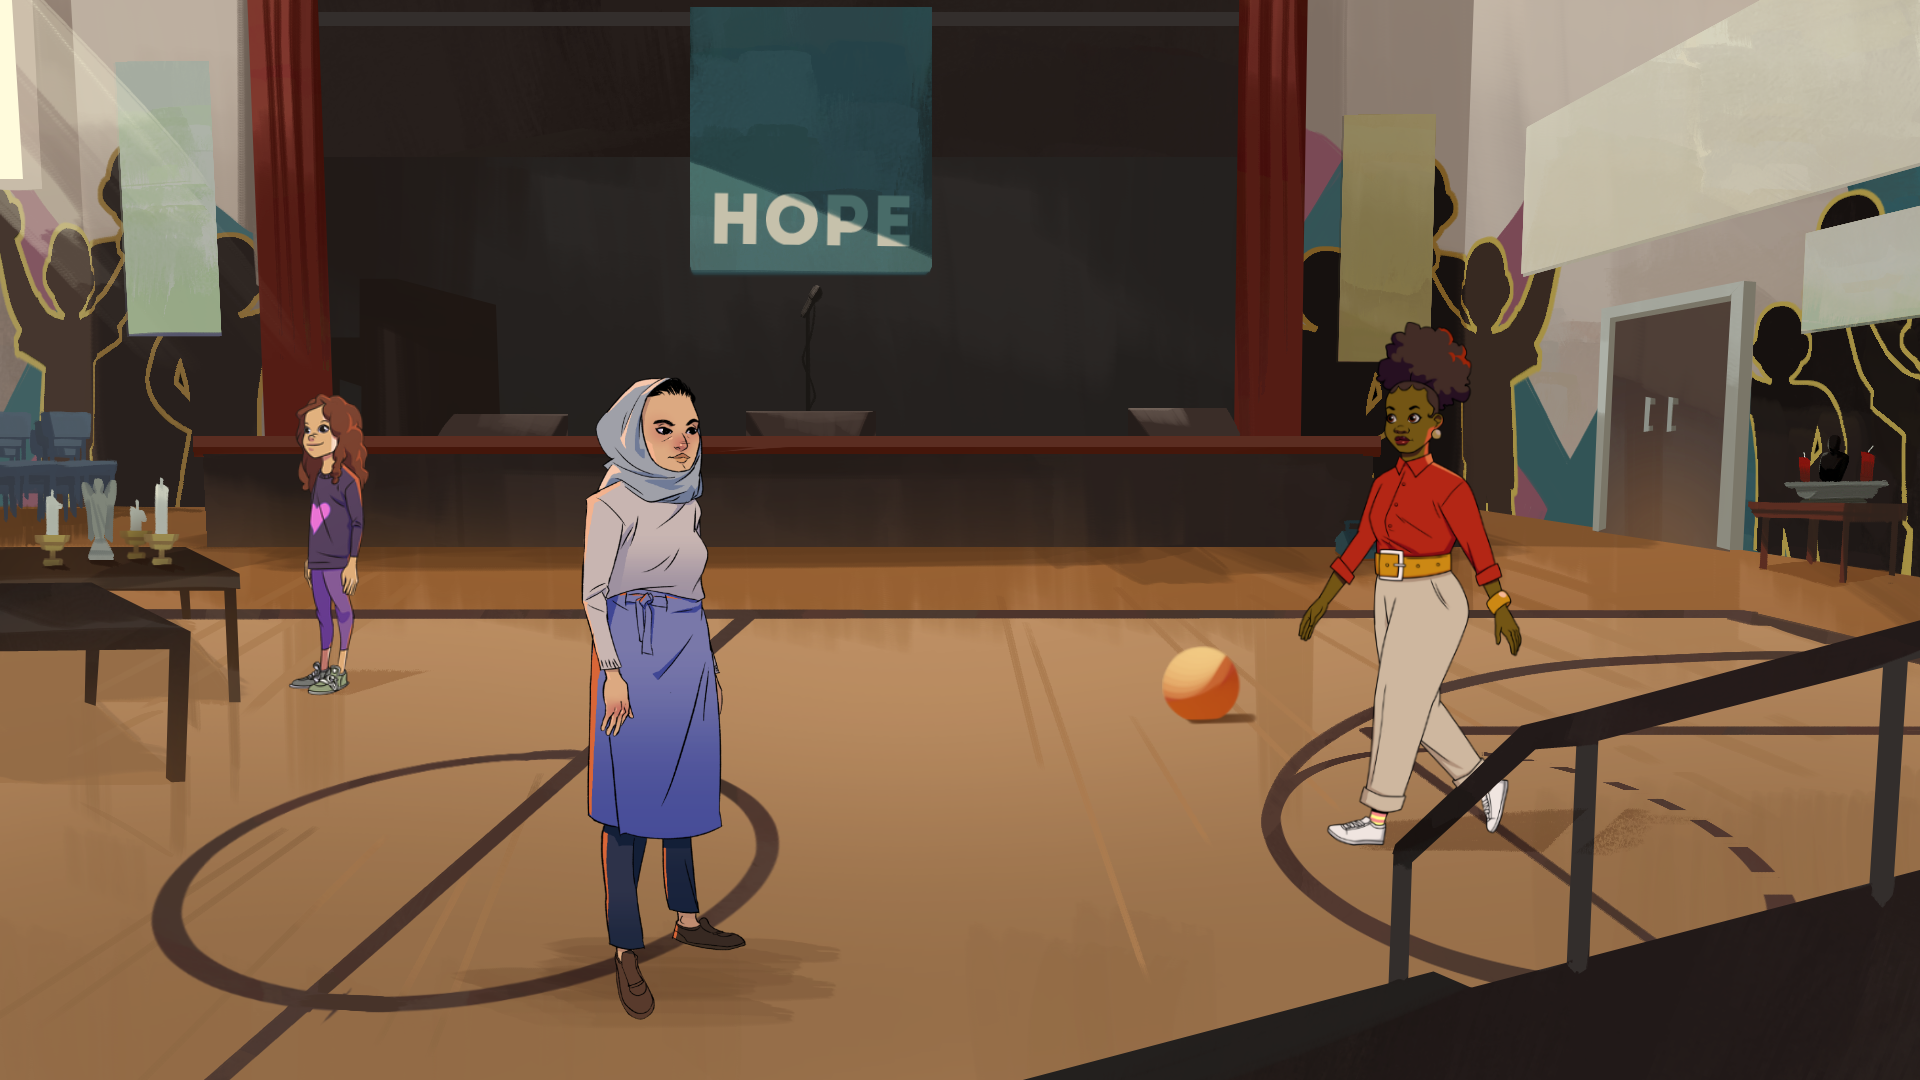 a young black woman in a basketball gym with a hope banner displayed behind a stage